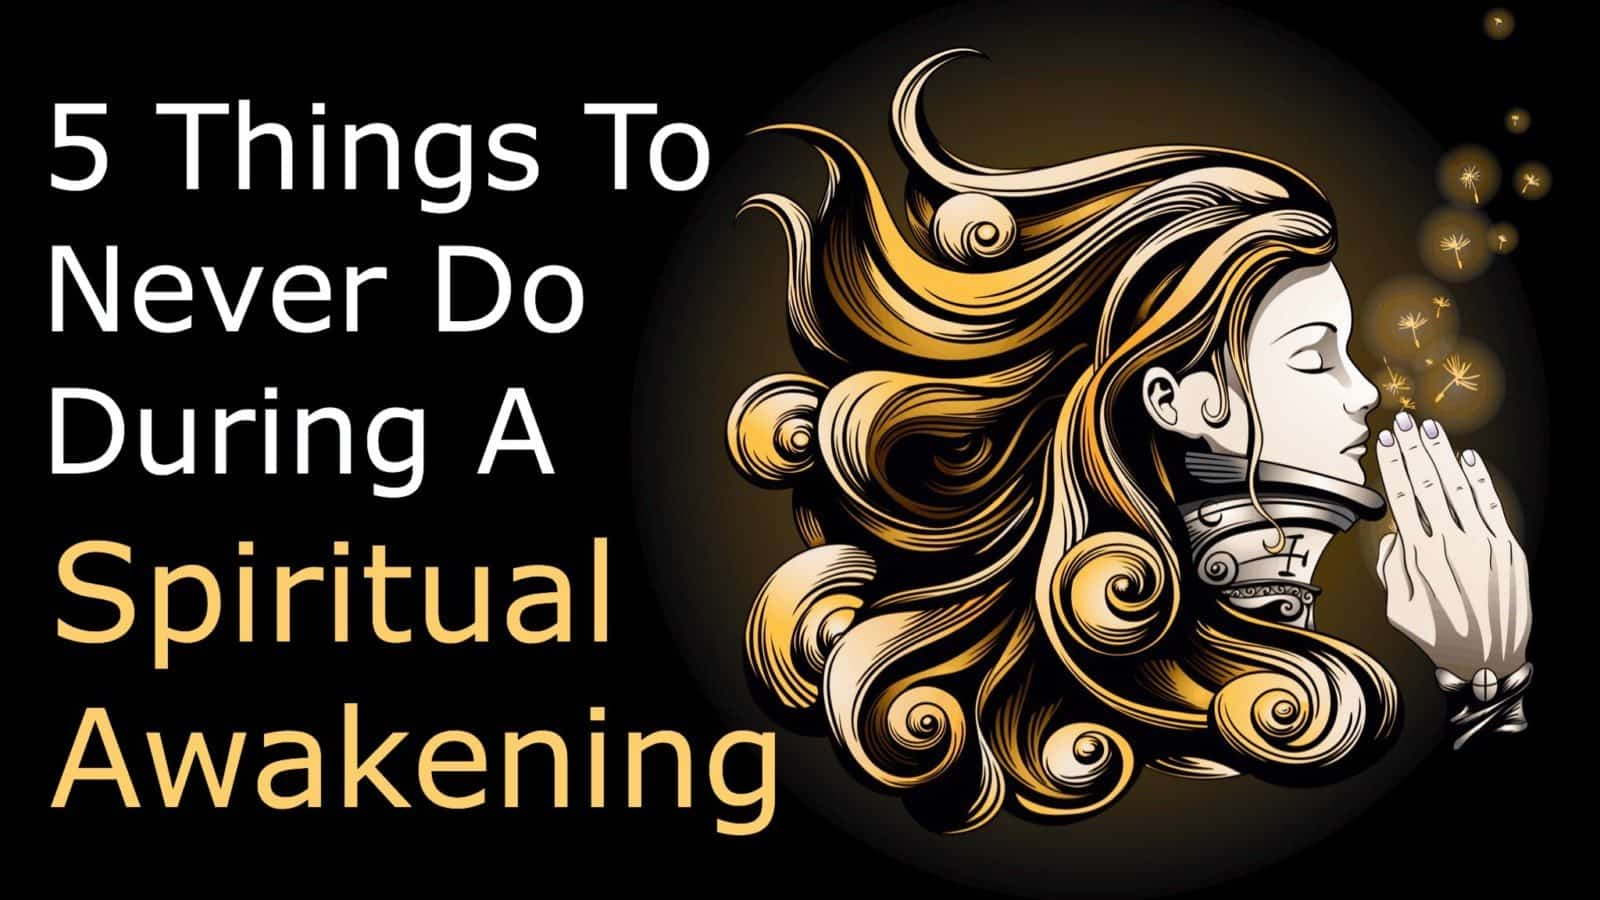 5 things to never do during a spiritual awakening